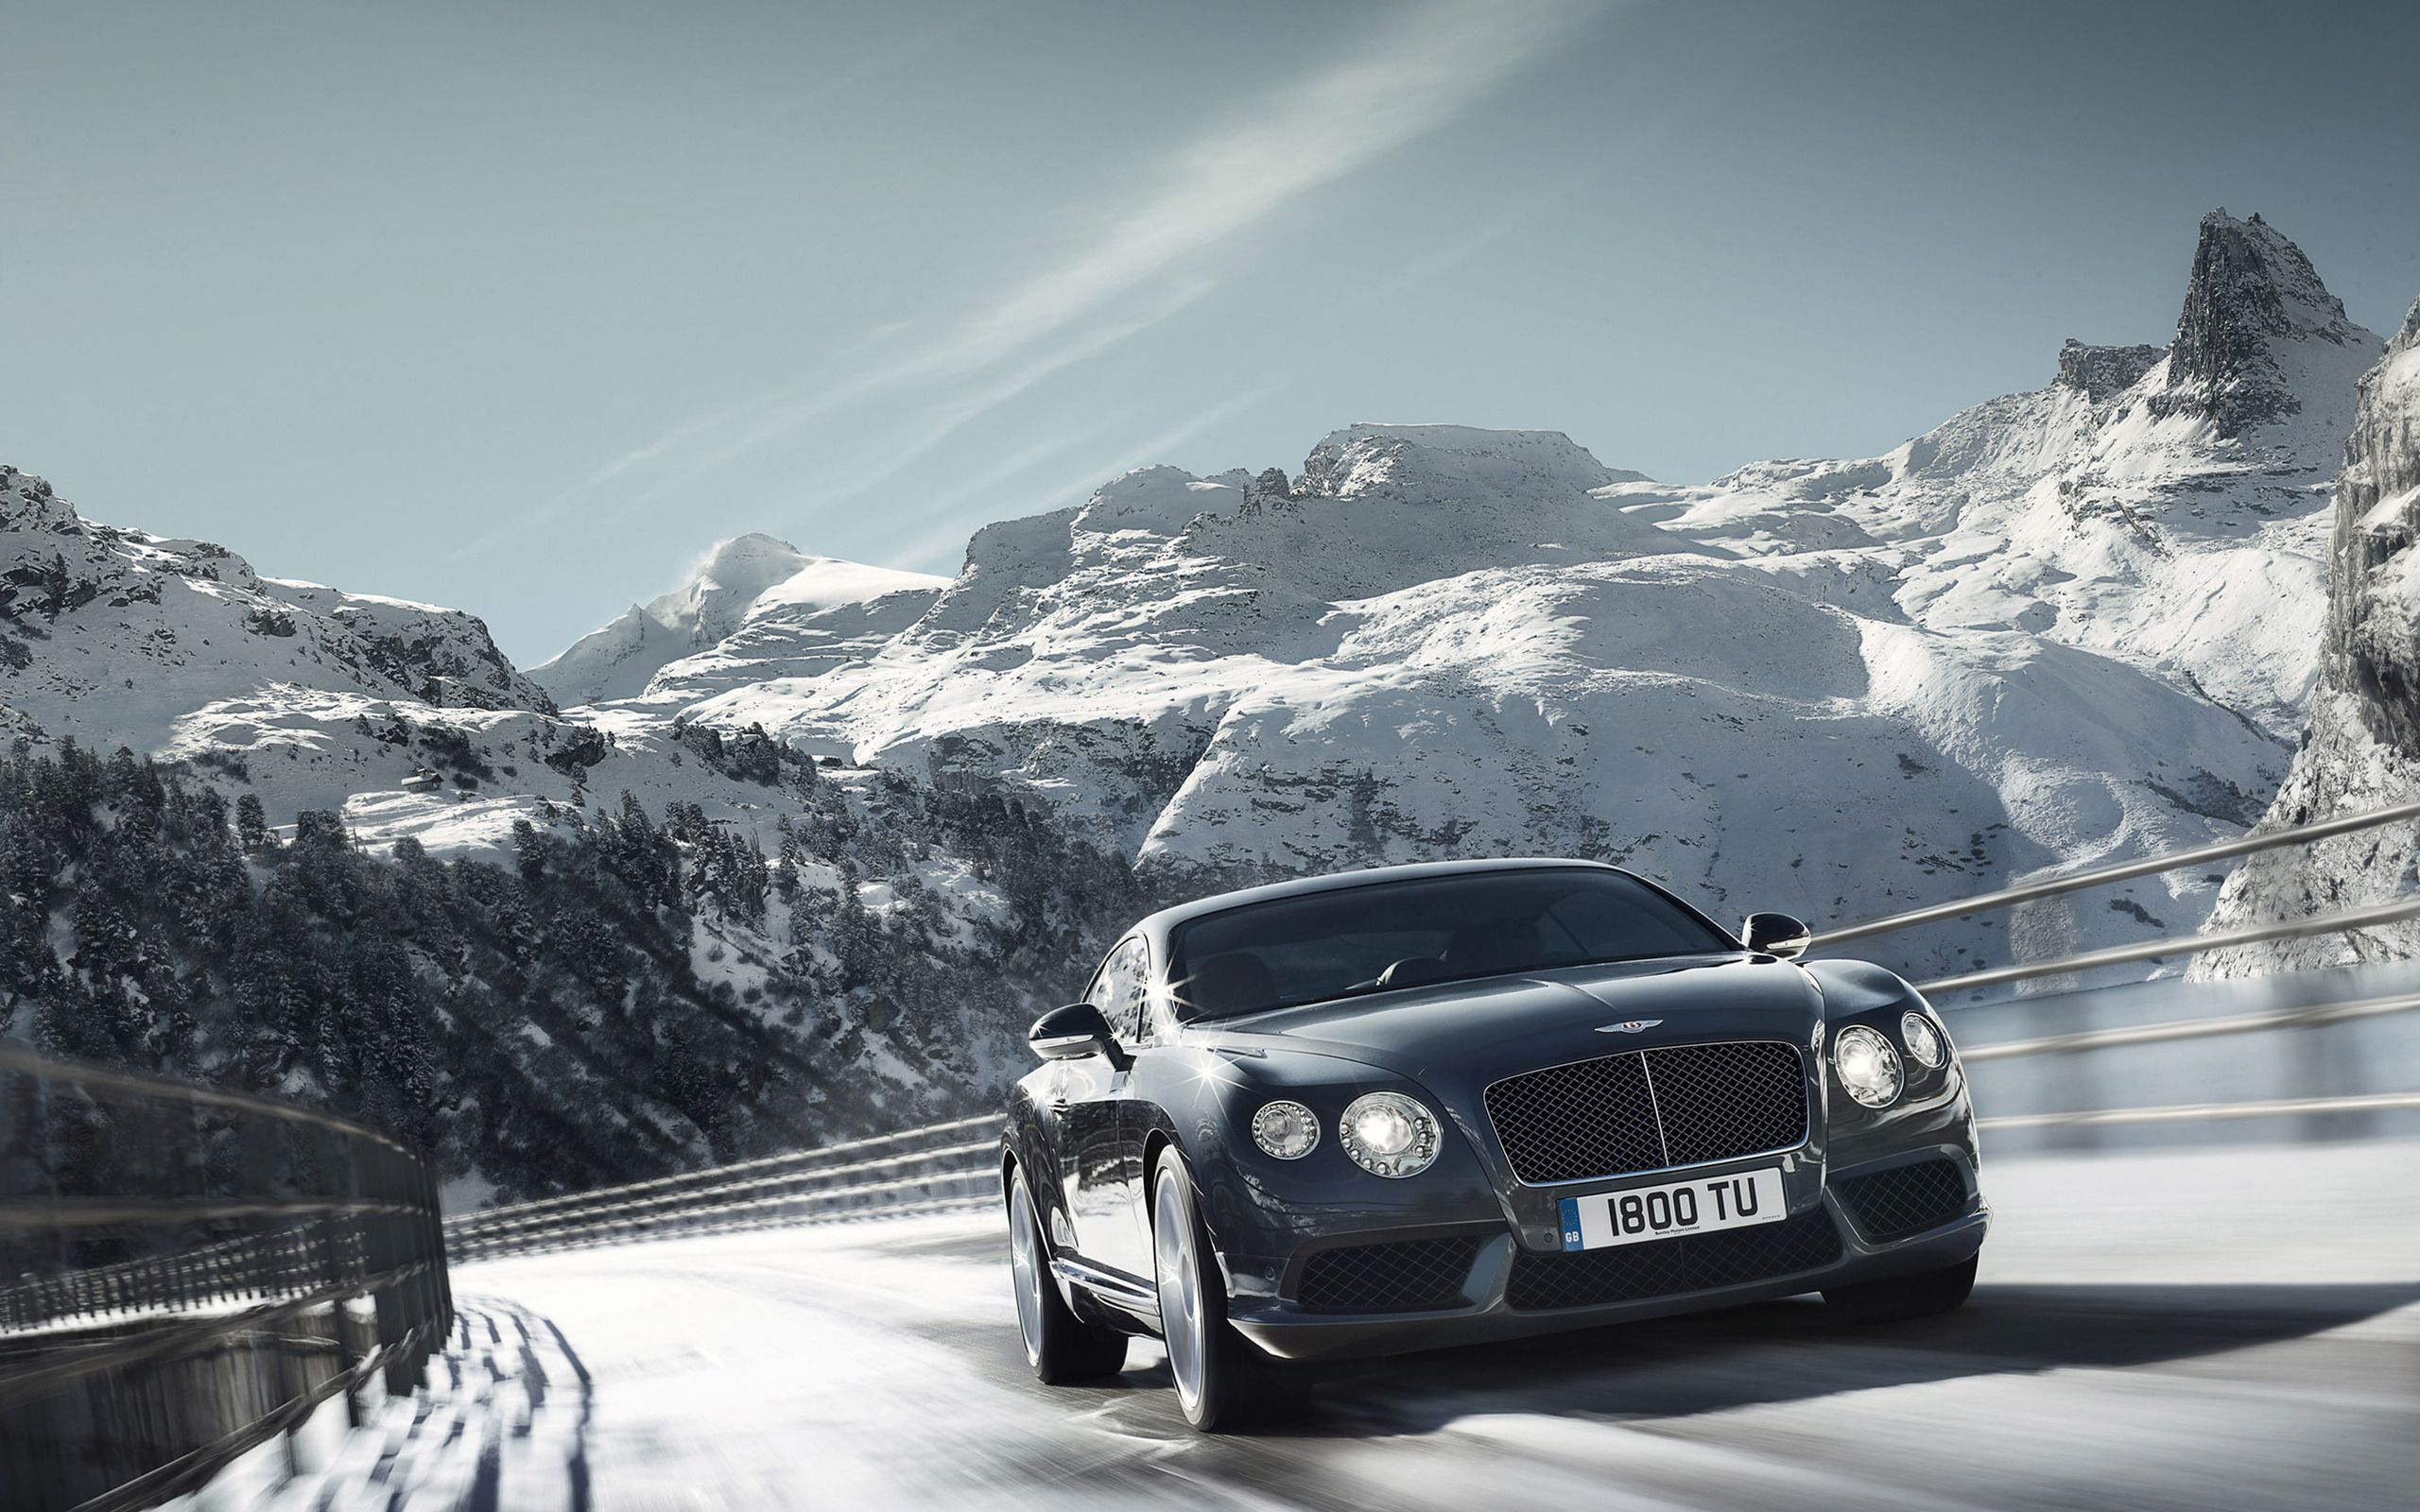 ice insurance power just on raw bentley edit post portfolio consulting event cars